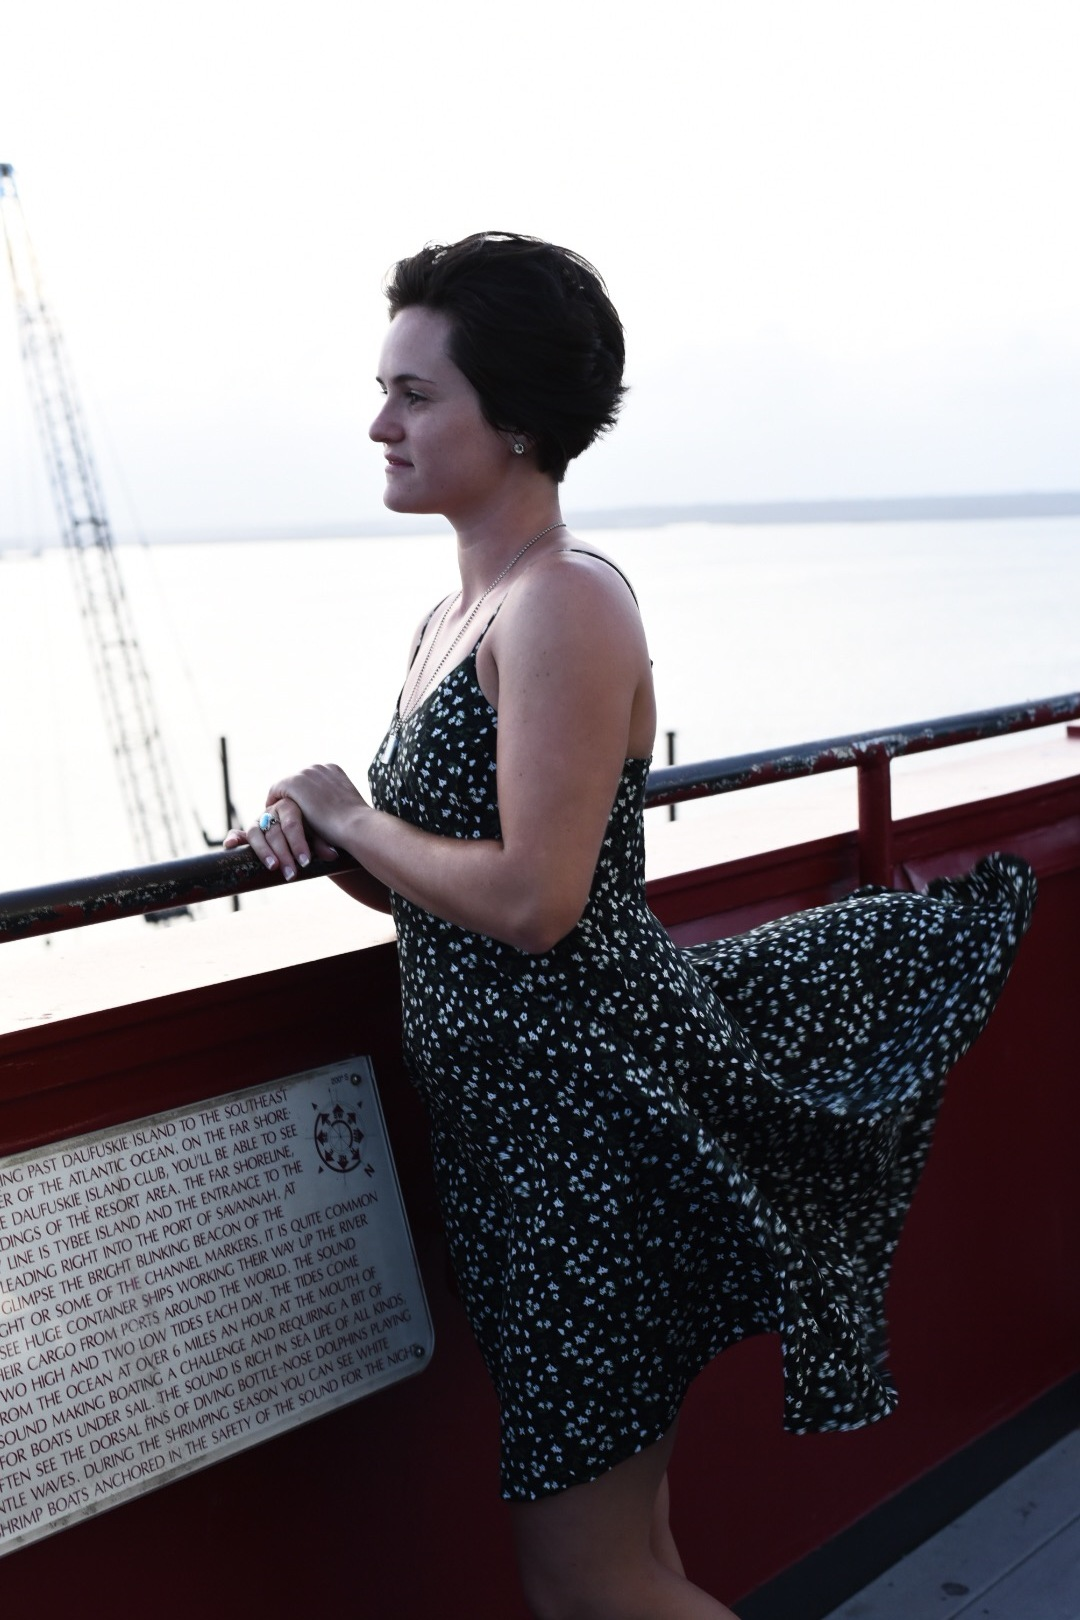 """""""Oh my gosh! quick grab it, pull it down!"""". Her dressed flew up in an unladylike manner as an impertinent gust blew through the railing. Click. Perfect angle to add some drama. Who wants to look ladylike in a picture anyway."""